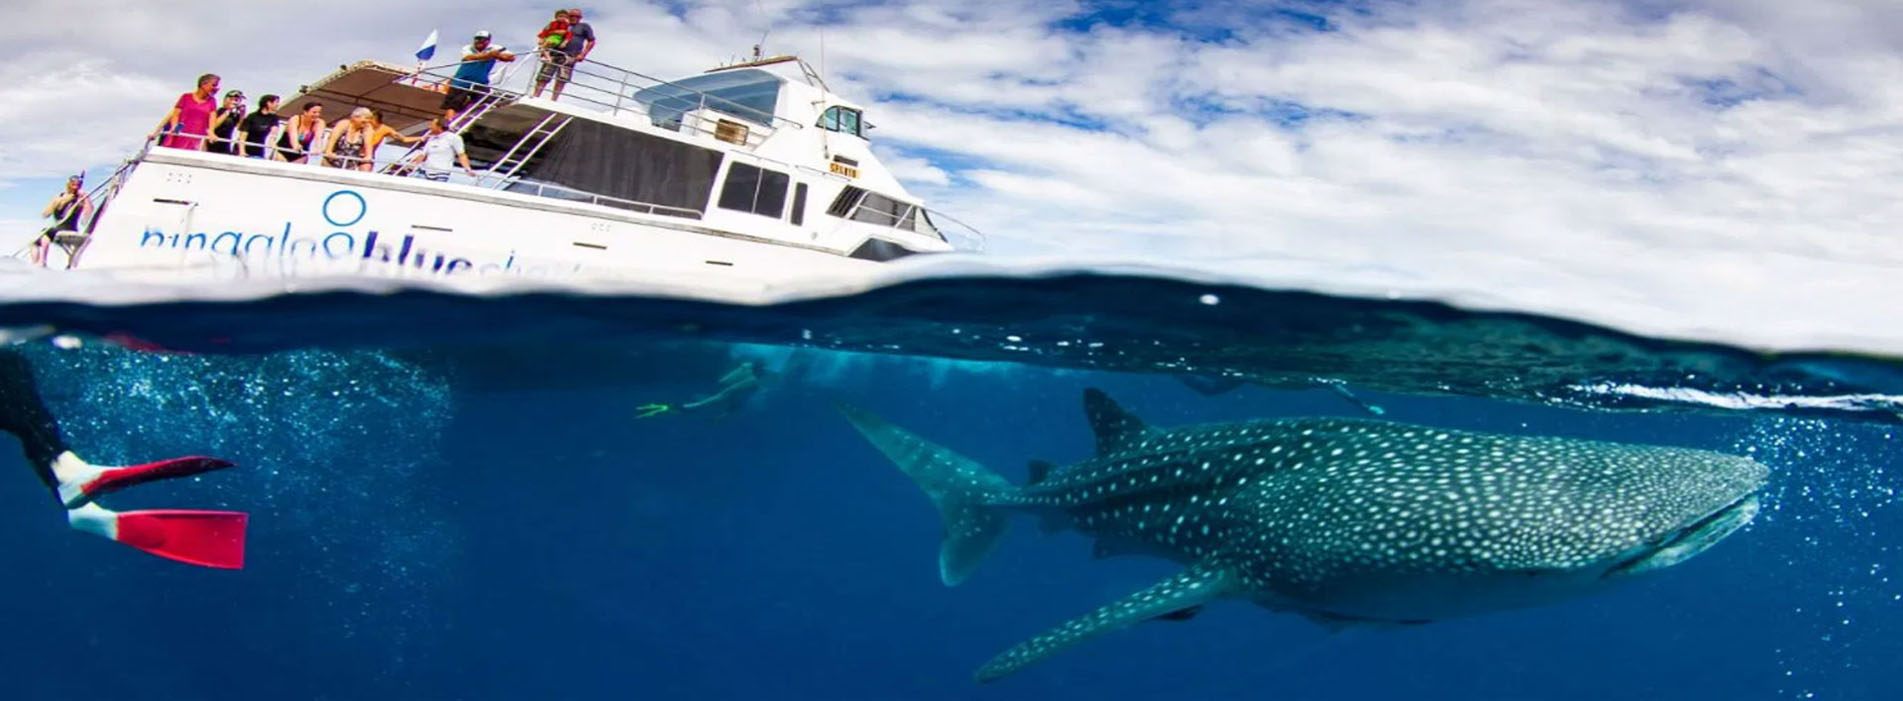 VENTURE-IV-whale-shark-swims-Ningaloo-boat-in-water tour